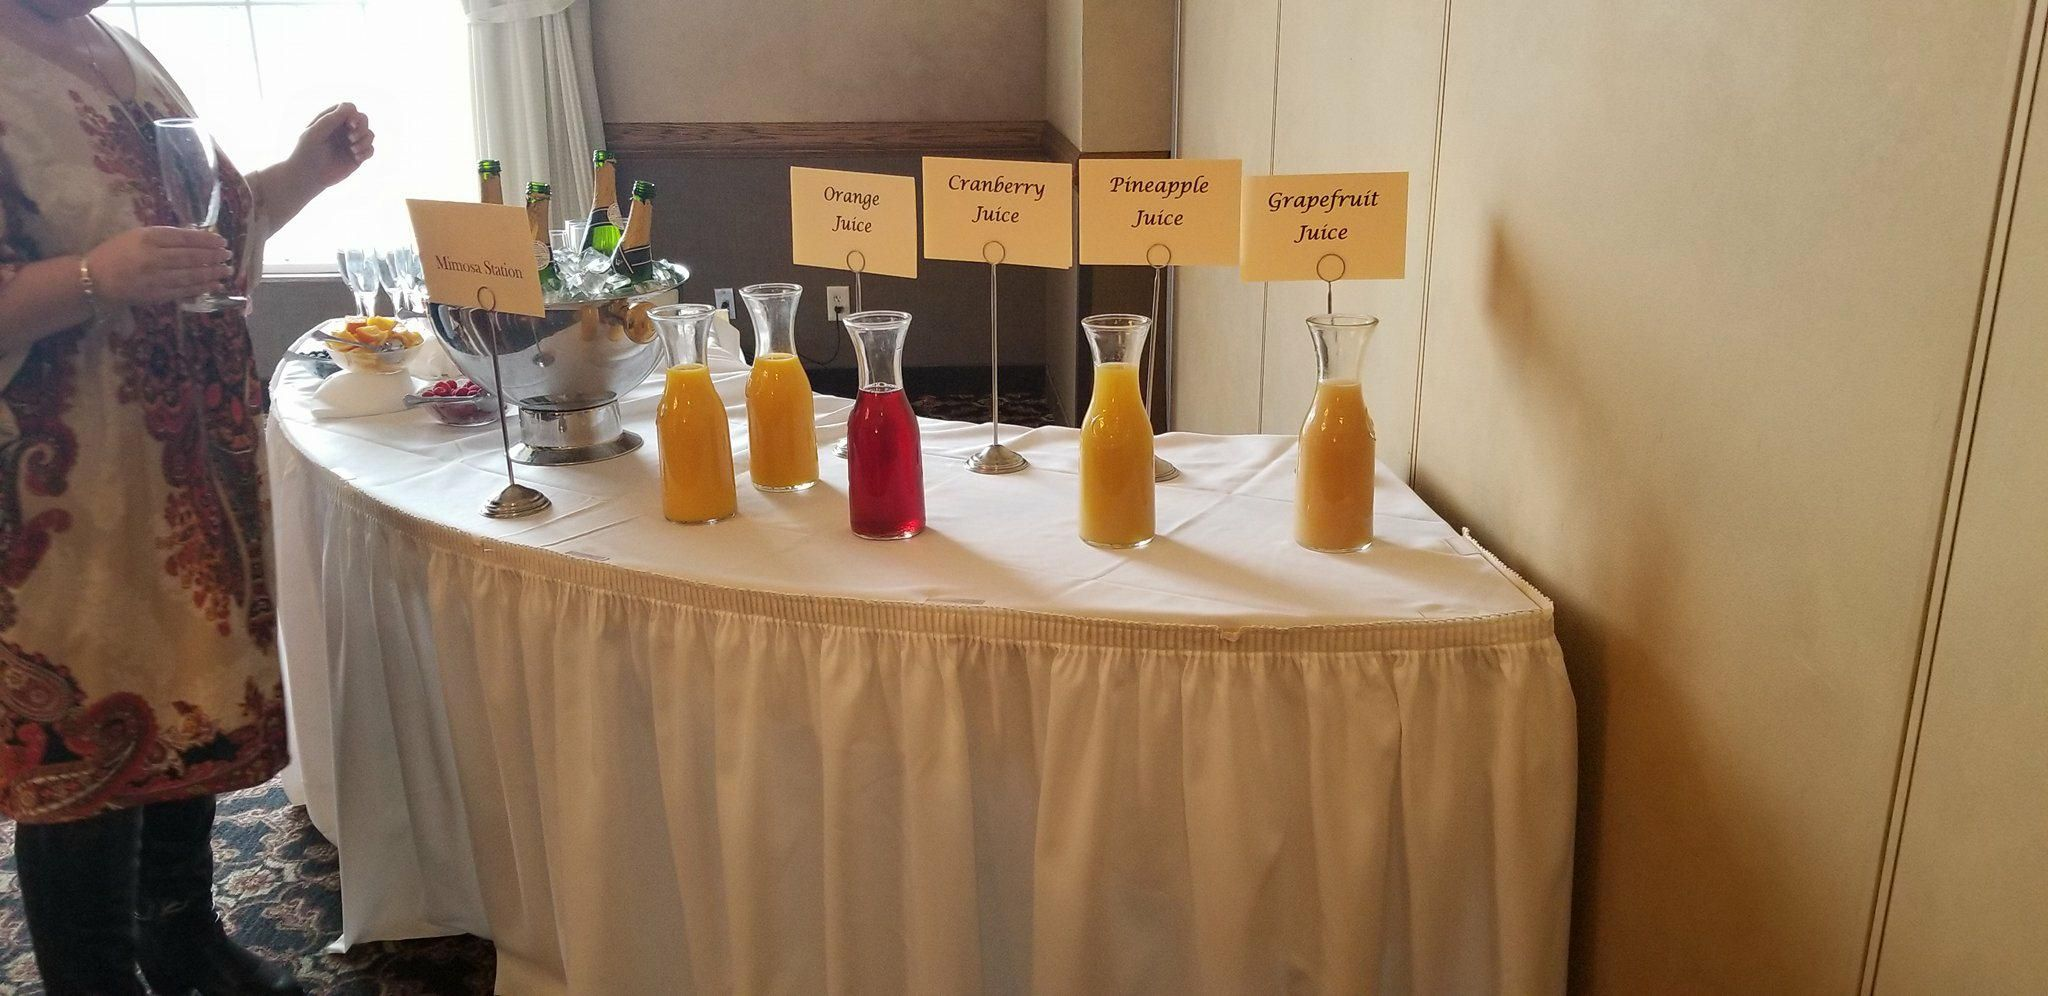 Pin on Baby and Wedding Showers at Avalon Manor